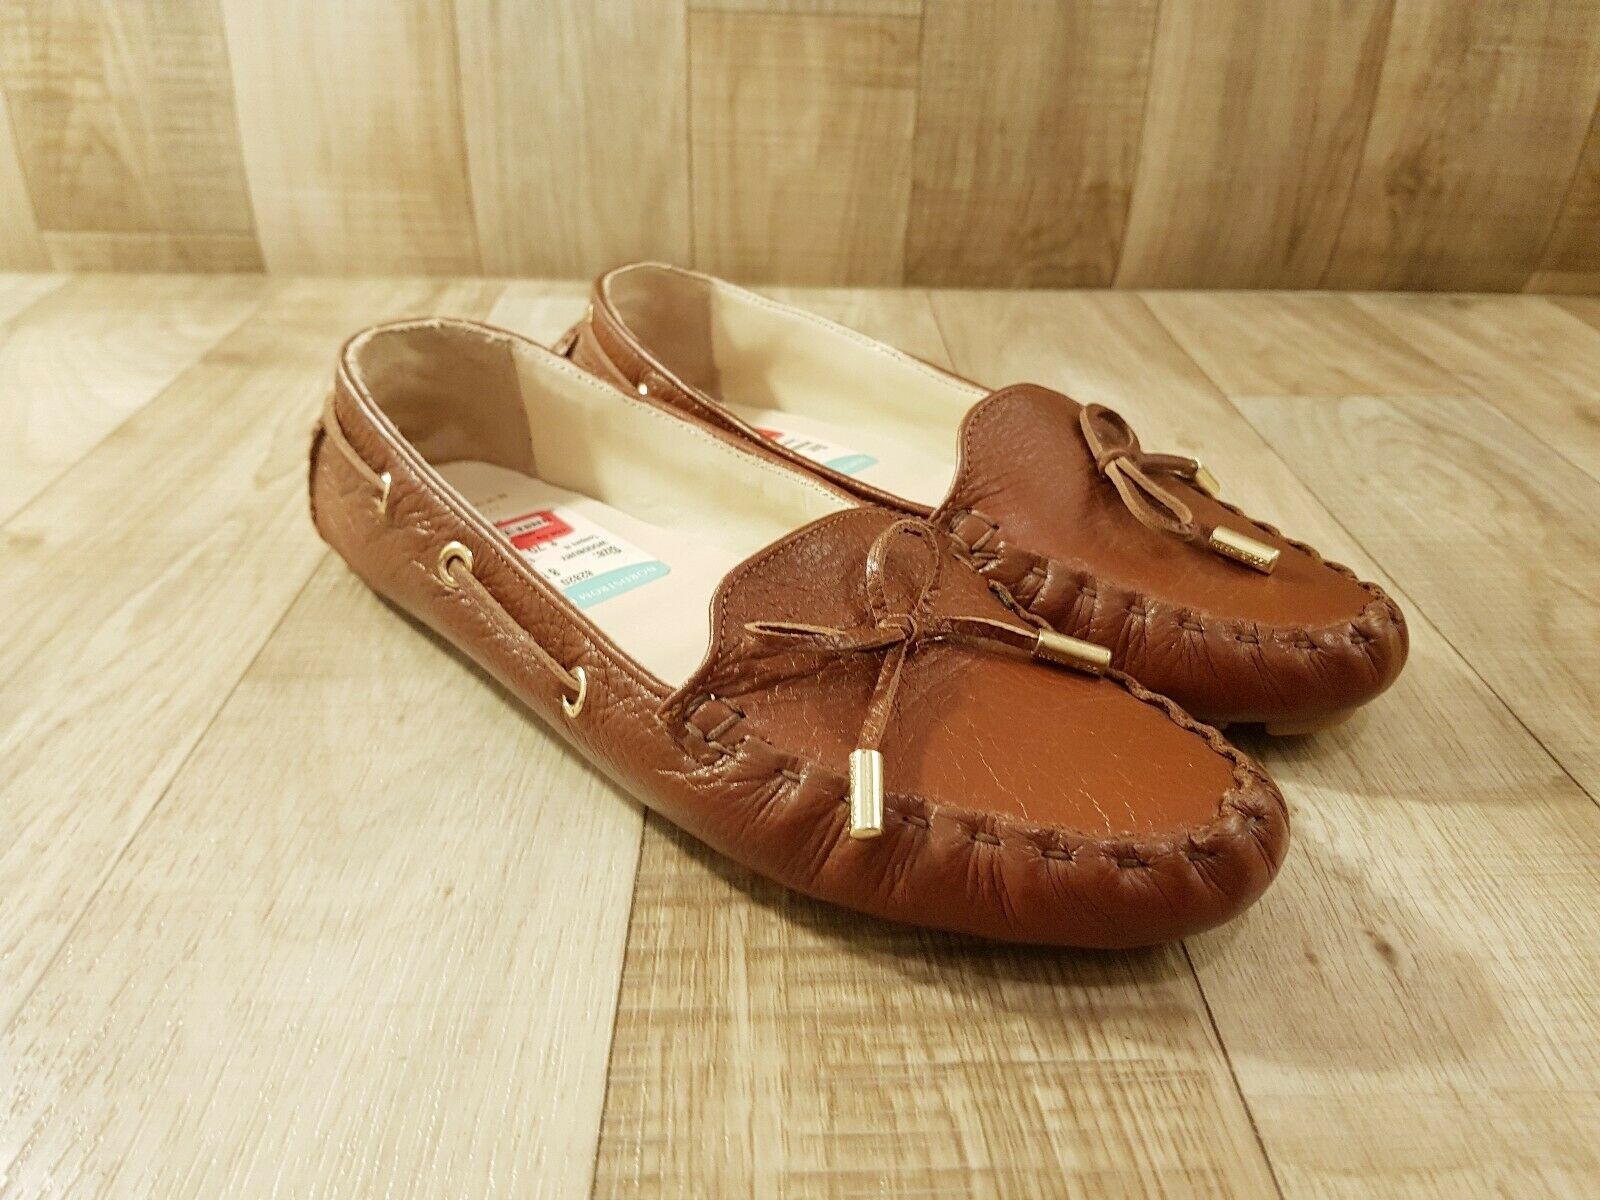 COLE HAAN Cary Chestnut Leather Slip On Drivers Moccasins Women's 8 B NICE